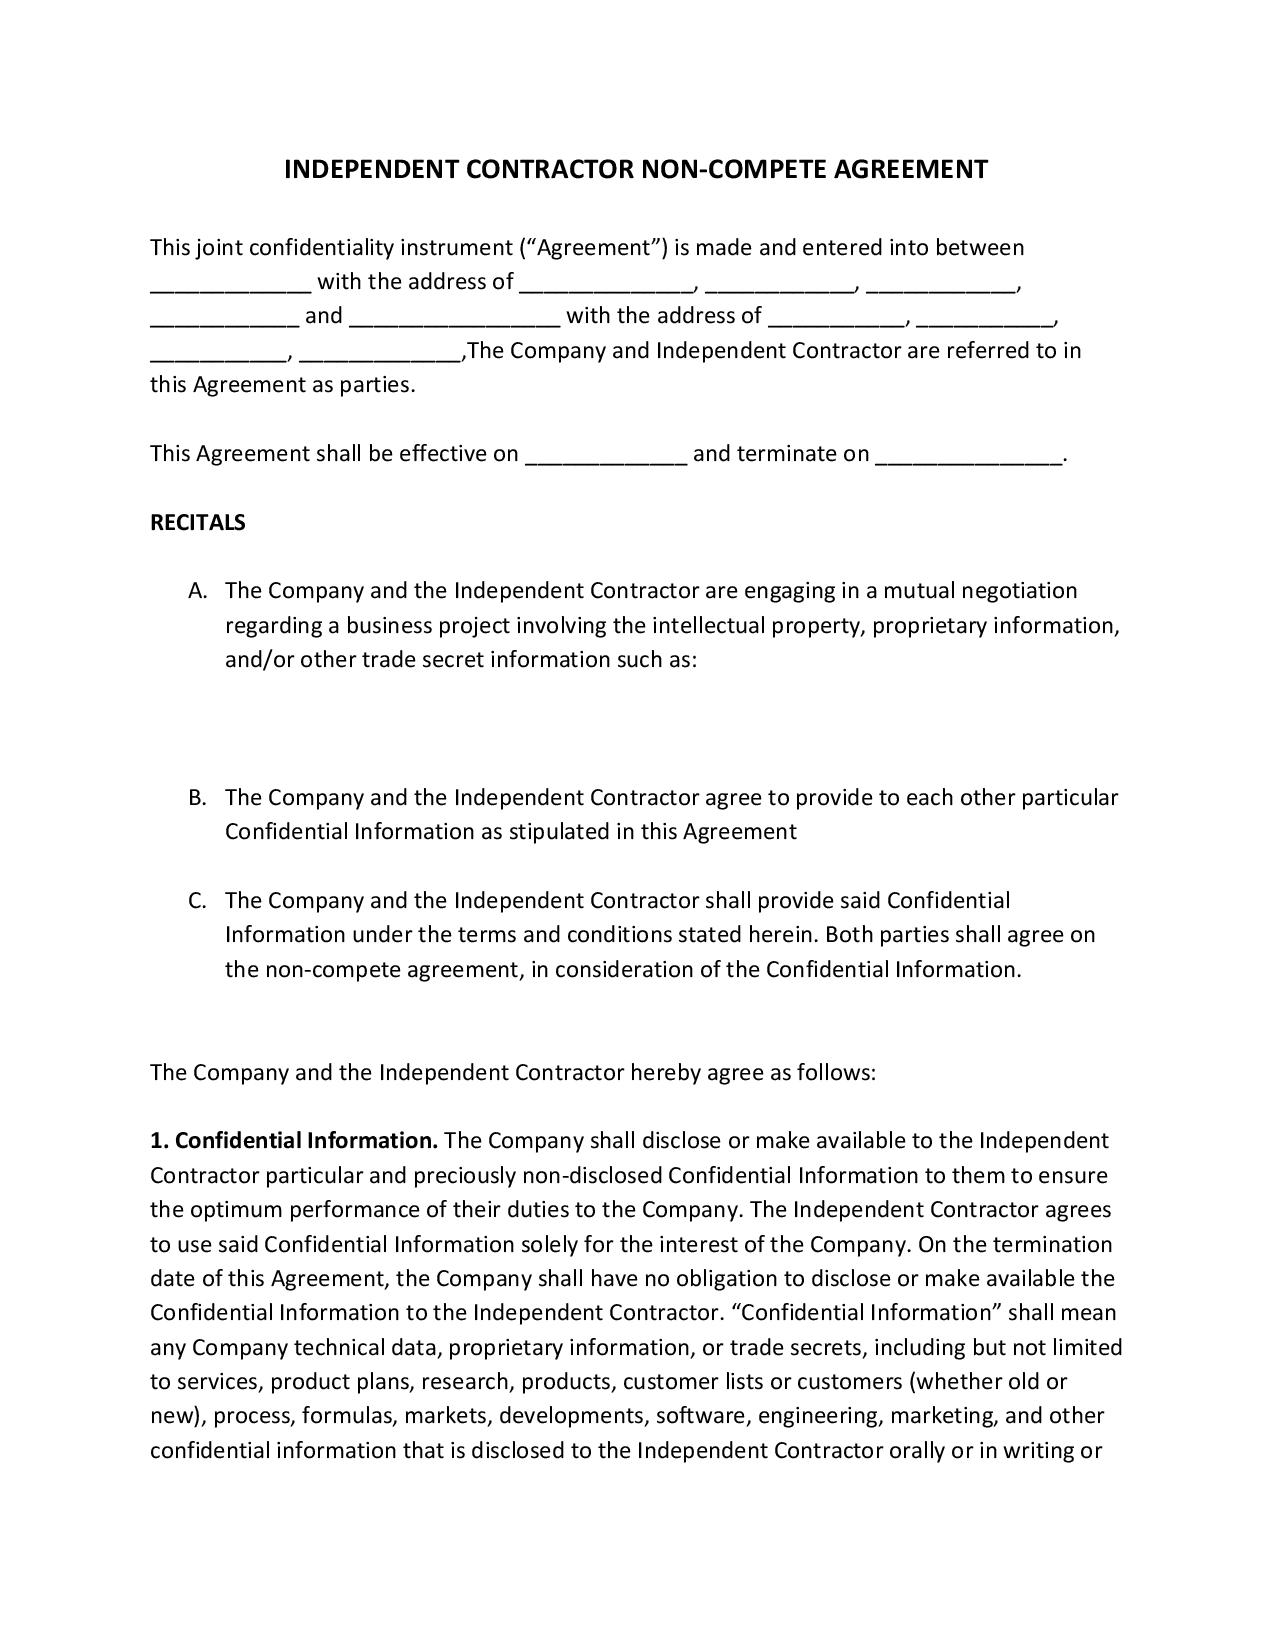 independentcontractornoncompeteagreement